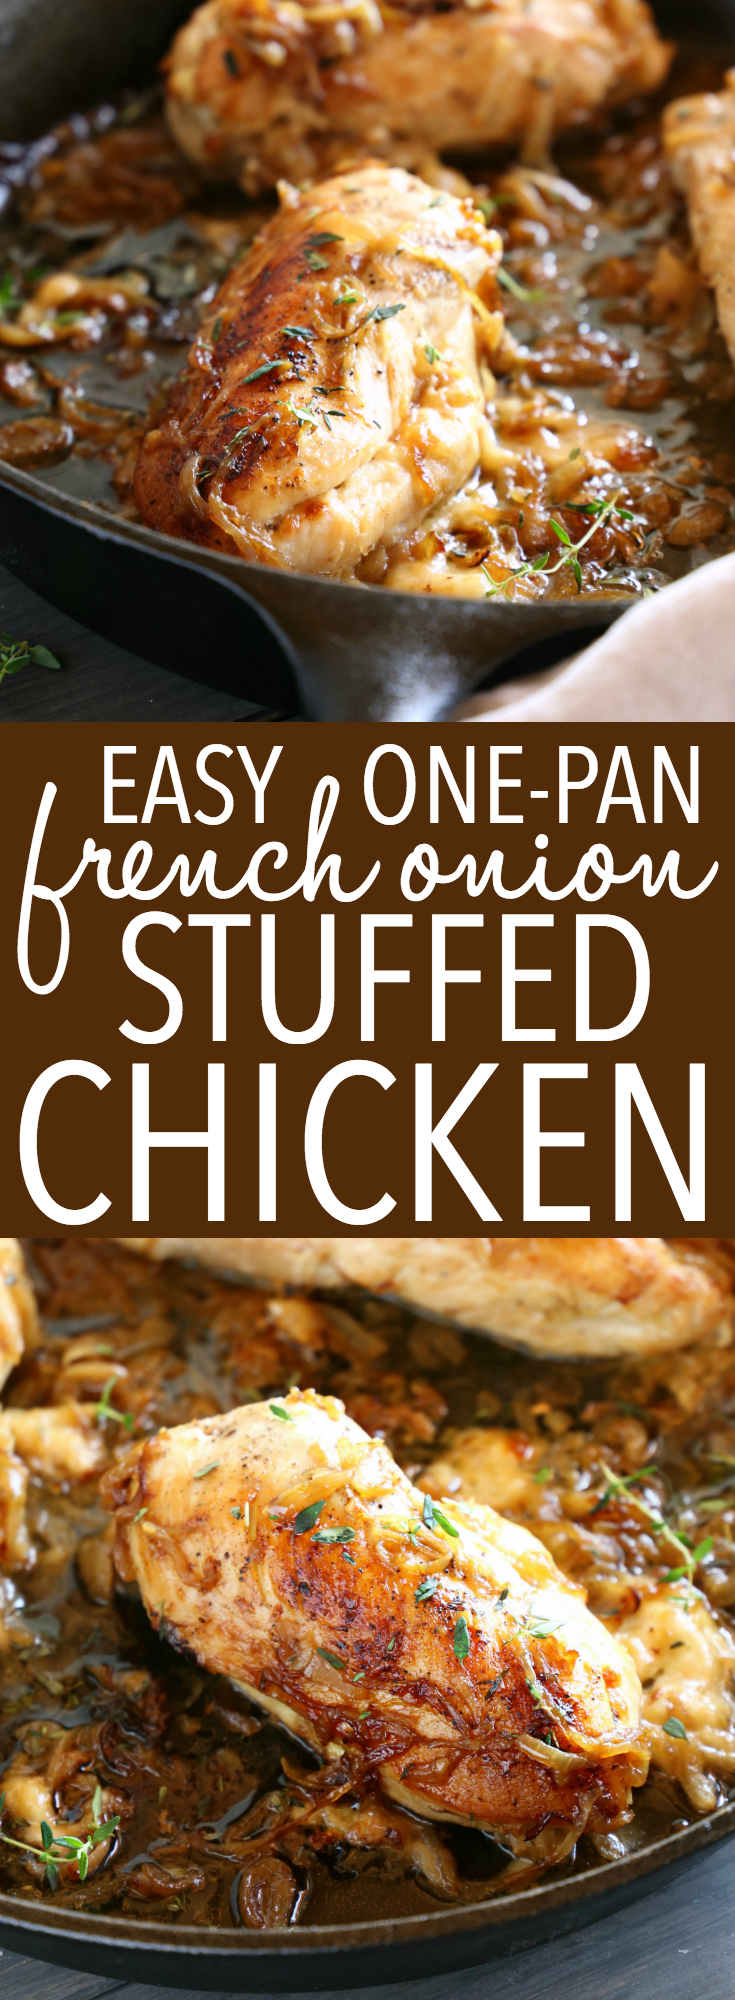 This Easy One Pan French Onion Stuffed Chicken is the perfect main dish recipe for French Onion Soup lovers! Juicy chicken breasts stuffed with sweet caramelized onions and gooey cheese!! Recipe by thebusybaker.ca! #frenchonionsoup #frenchonionchicken #chicken #stuffedchicken #maindish #easymeal #recipe #easy #castiron #dinner #dinnertimerecipe #cheese #cheesychicken #familymeal via @busybakerblog